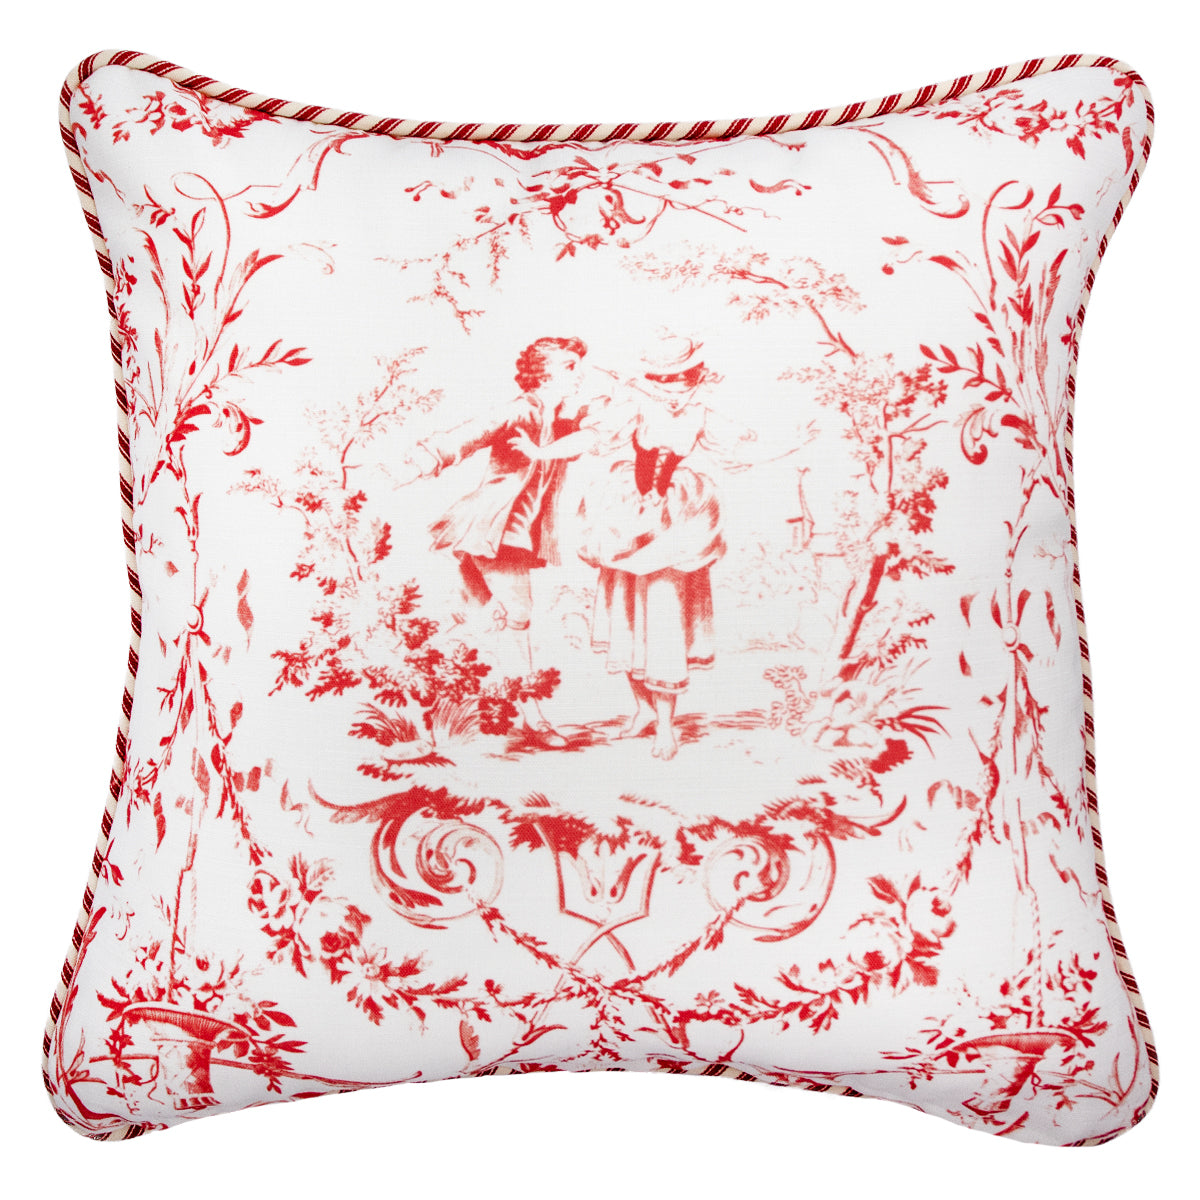 42cm角 コラージュクッション  Toile de Jouy with Piping #Red&White